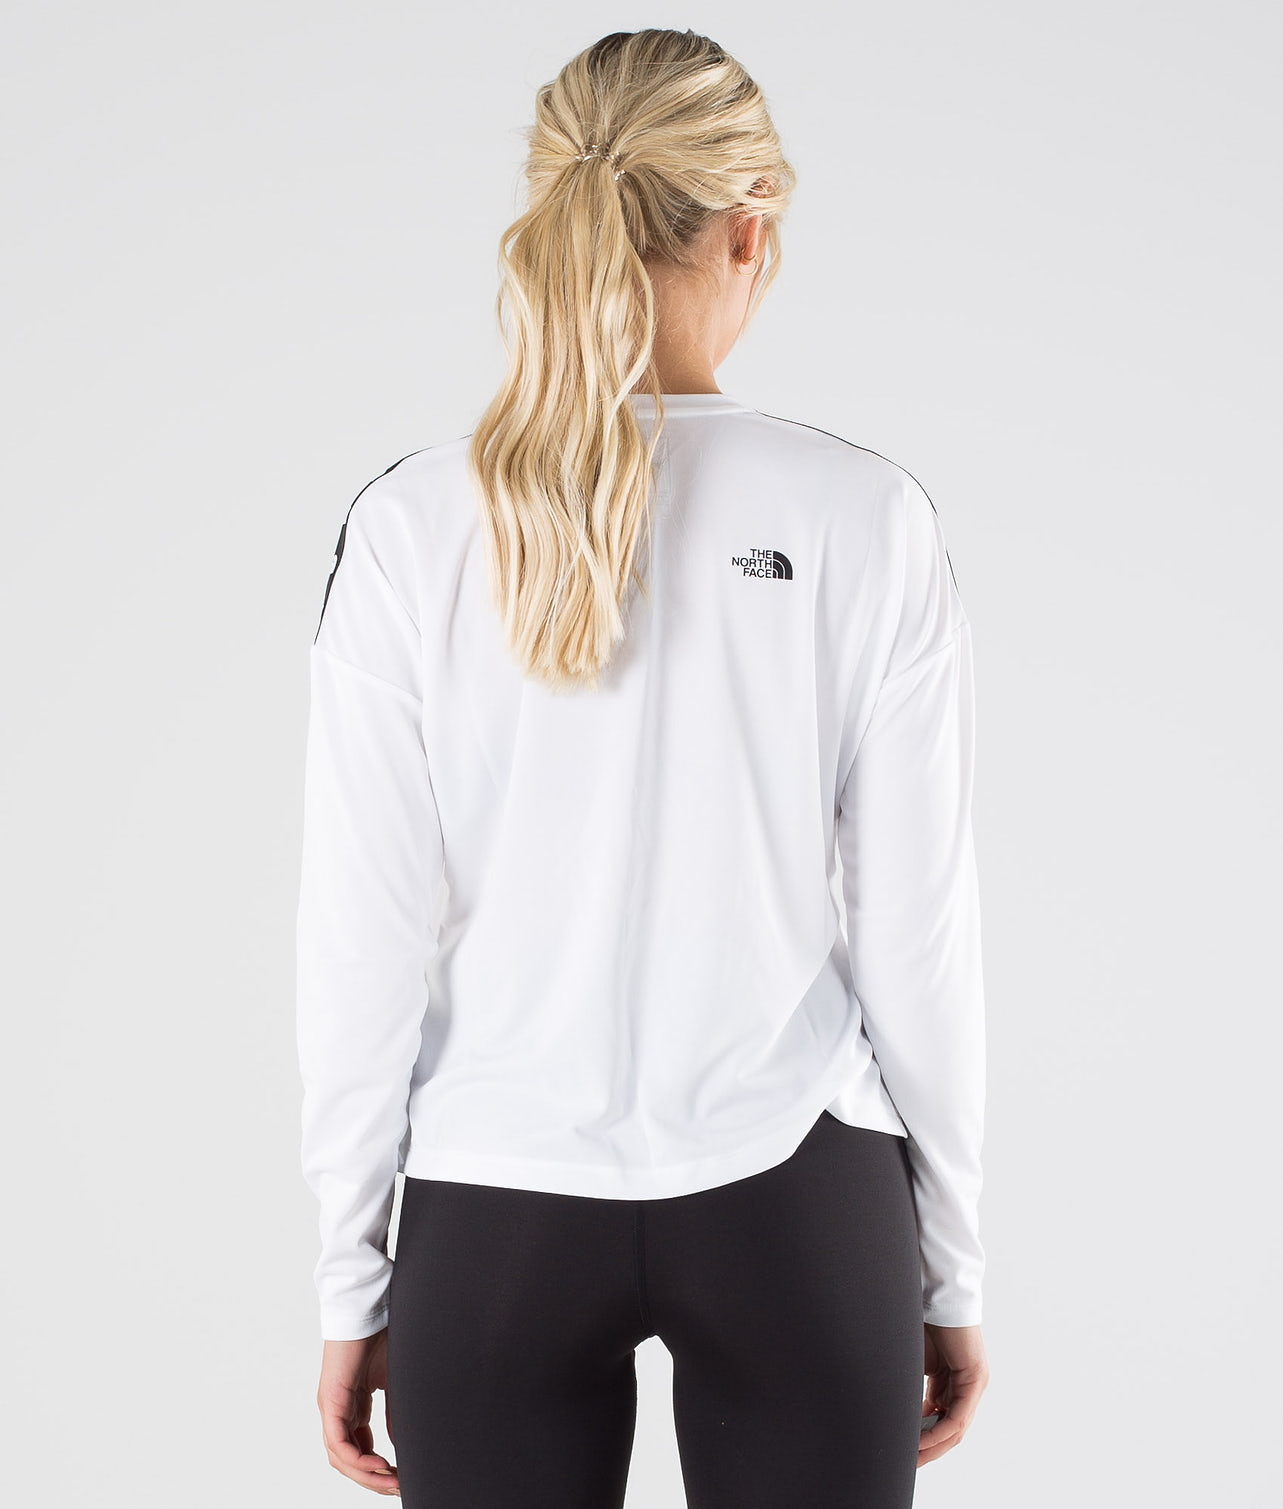 The North Face Tnl Crop L/S Tröja Tnf White